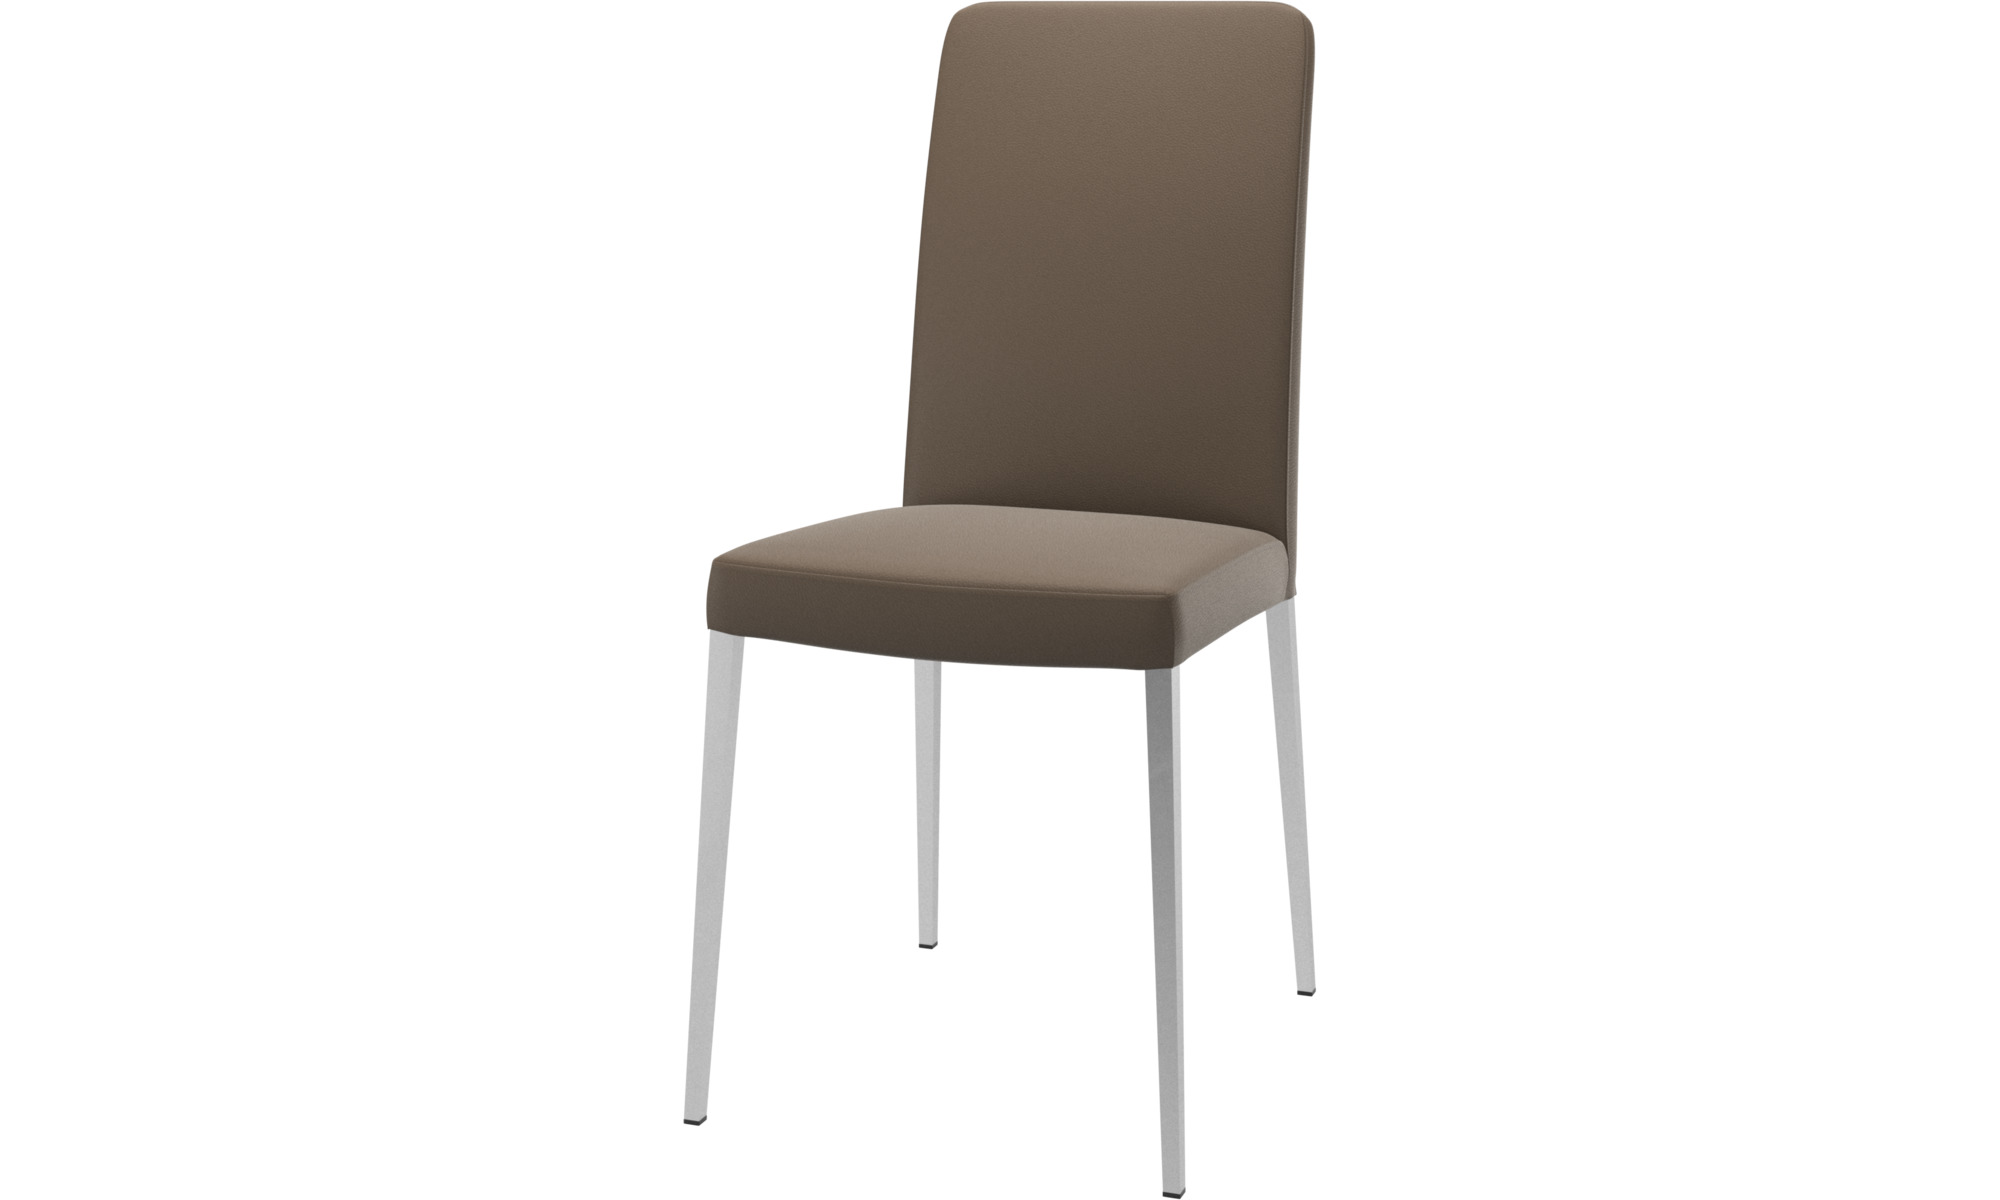 Dining chairs - Nico chair - Grey - Leather